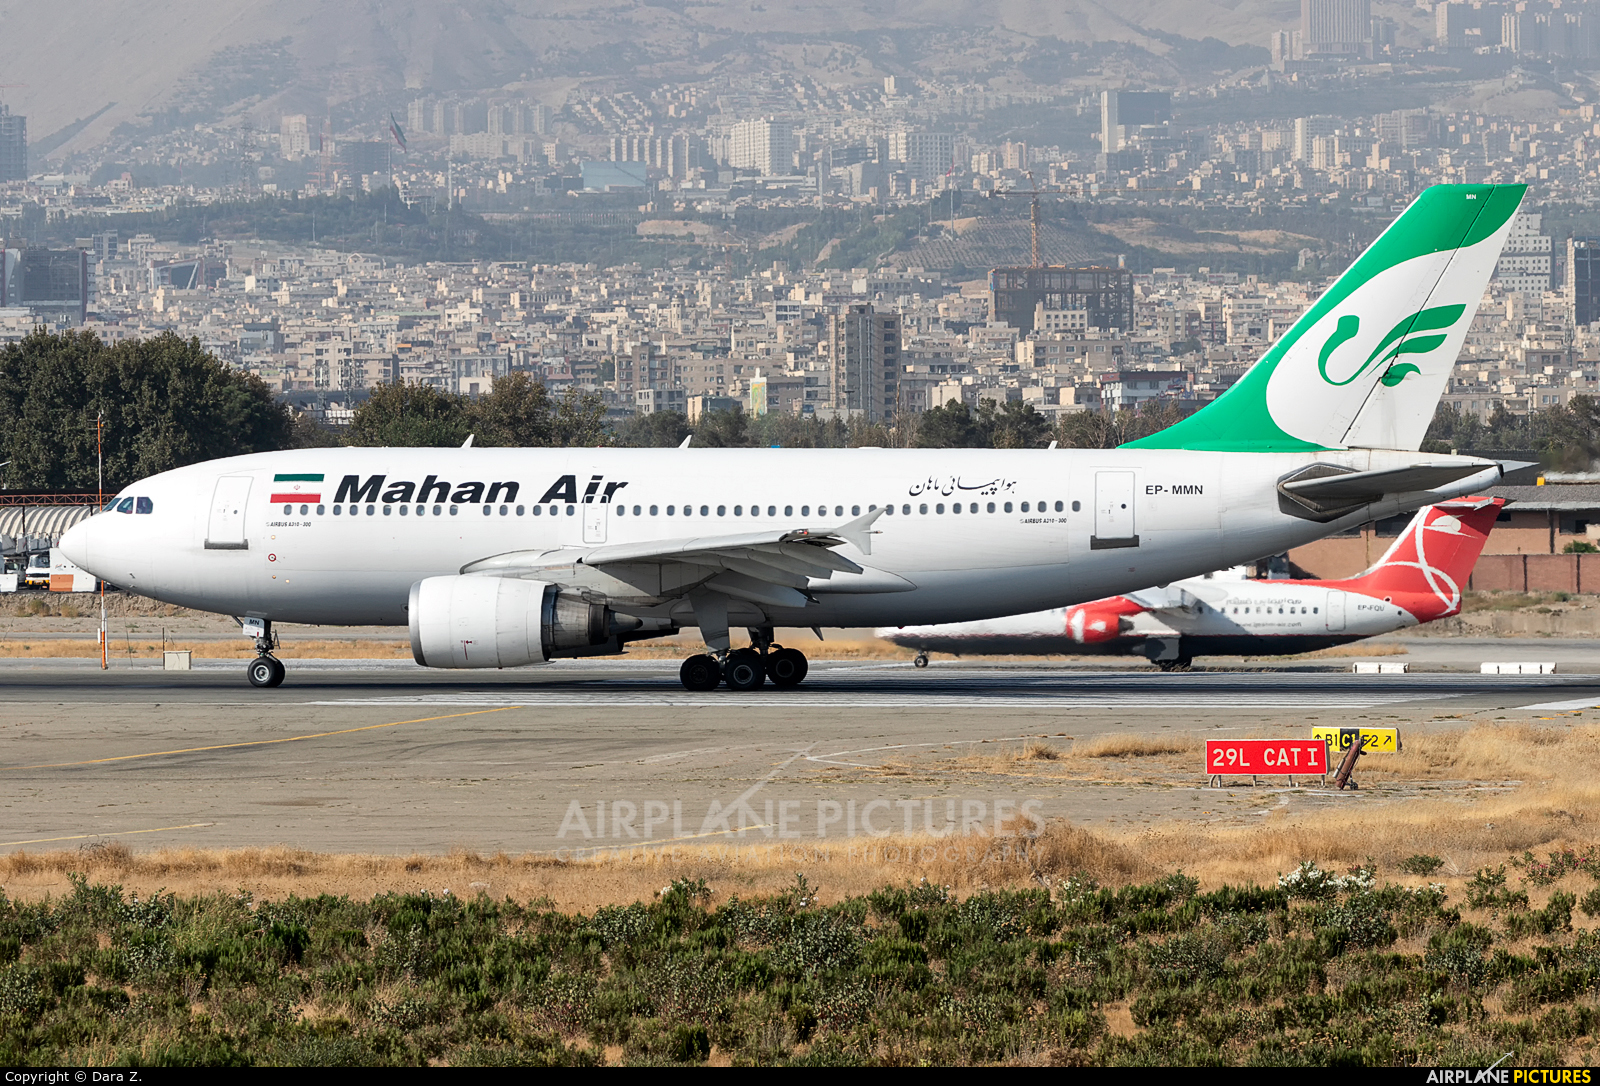 Mahan Air EP-MNN aircraft at Tehran - Mehrabad Intl